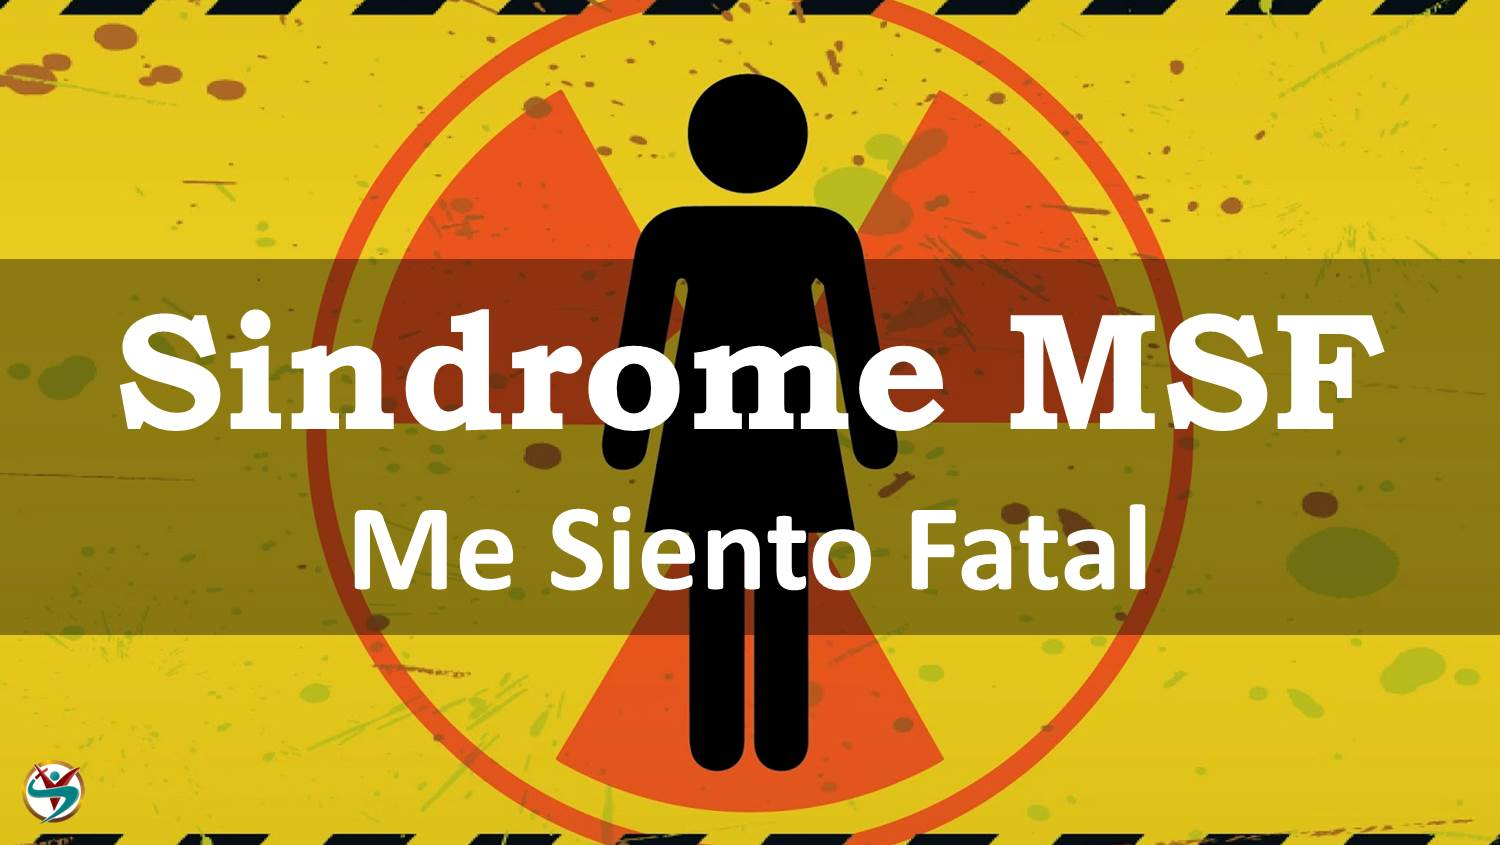 Sindrome MSF